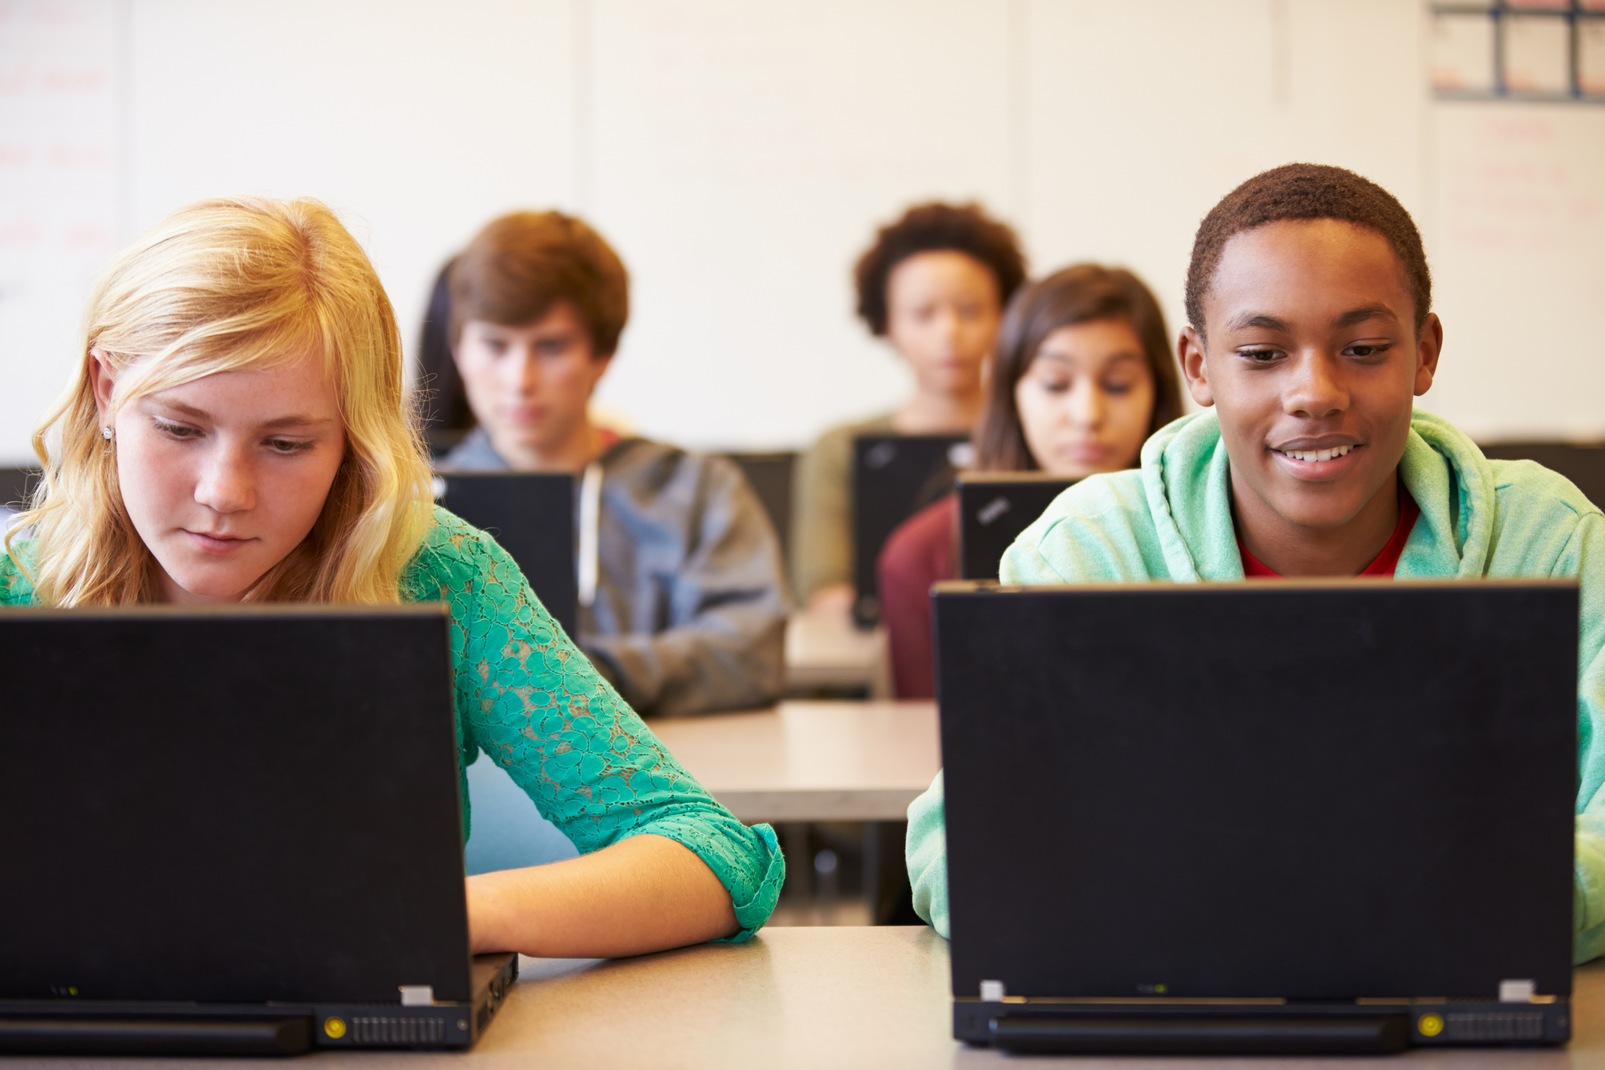 online school for high school students Online high school is a great option for students and families who desire a bit more flexibility than can be offered in a traditional brick-and-mortar setting the tuition-free k12-powered public high school courses are taught by state-certified teachers, and students earn a high school diploma upon graduation.